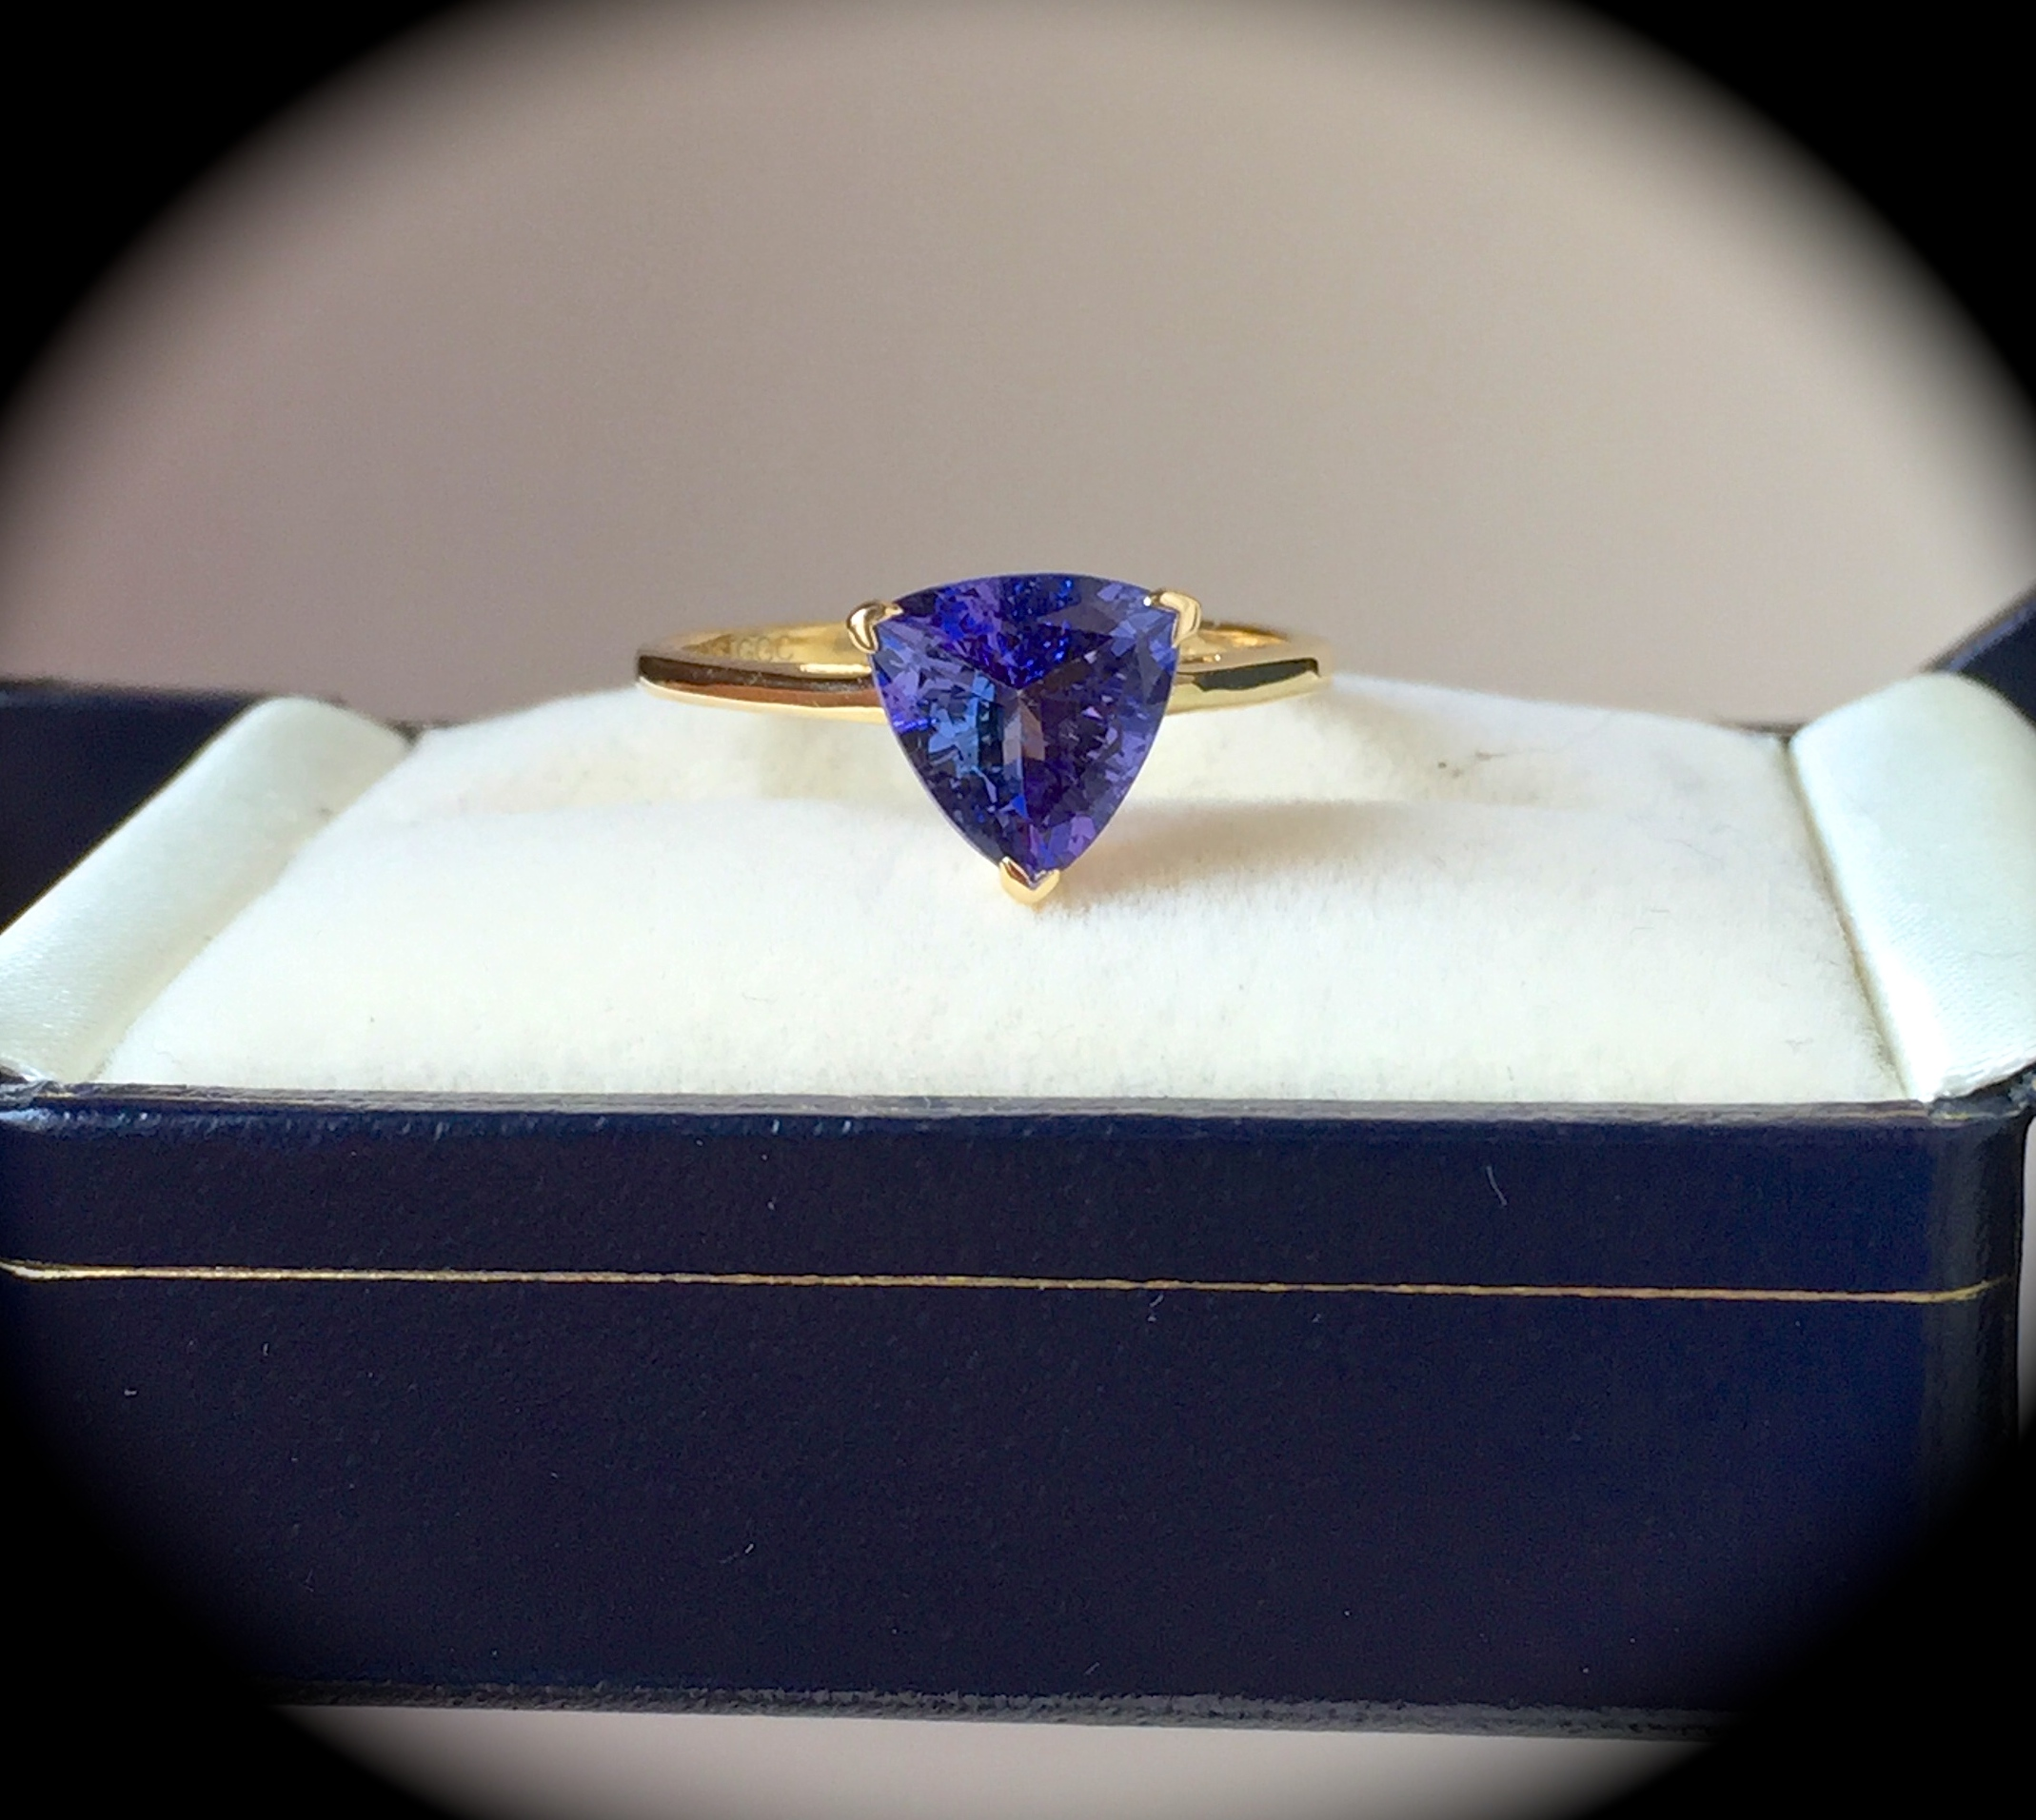 blue gemstone grade certified cushion aa itm violet igi liquidity ct cut easy tanzanite natural great investment